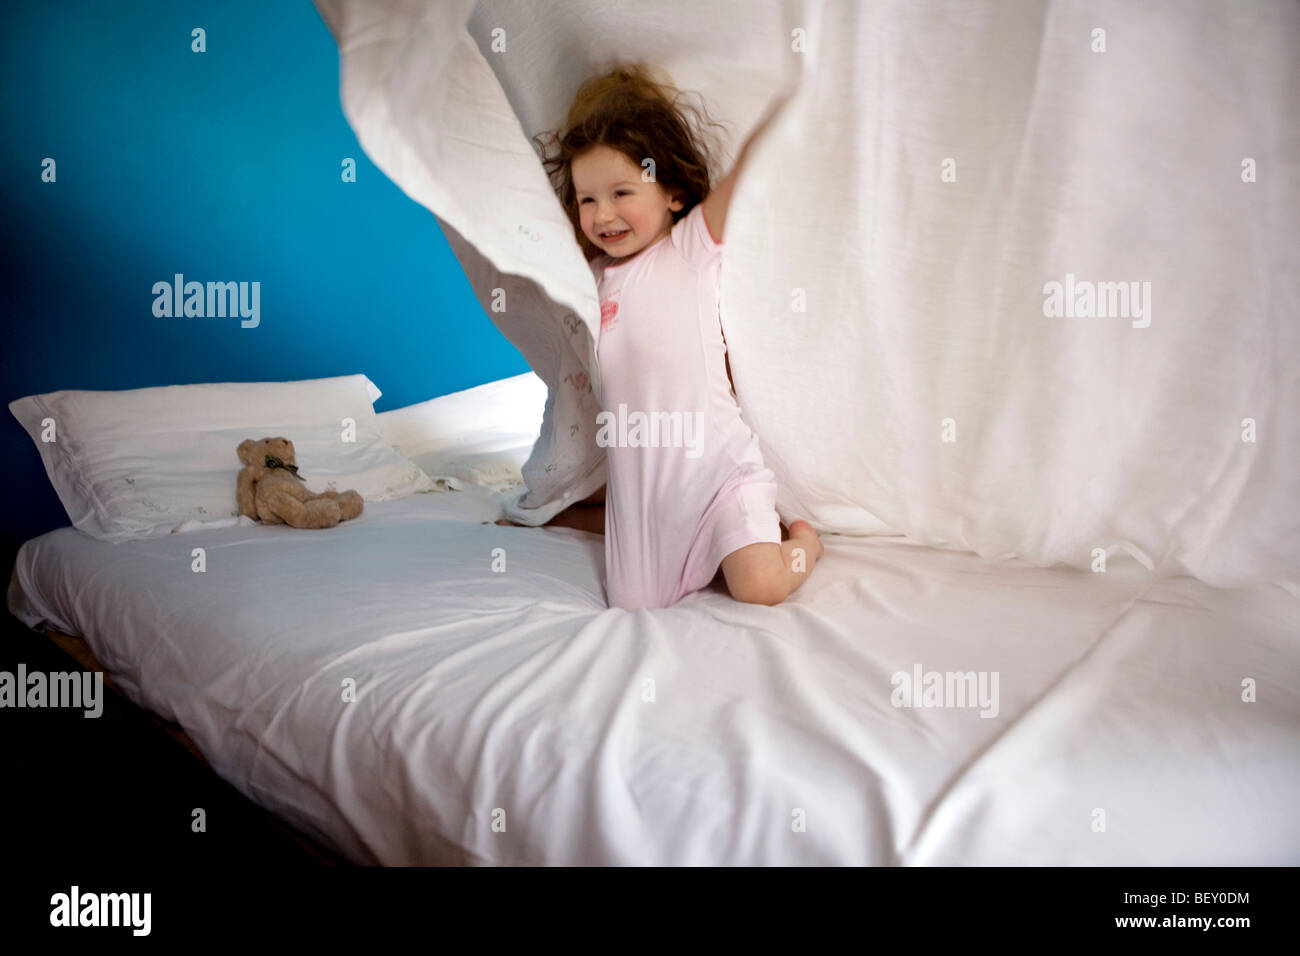 little girl playing with sheet - Stock Image